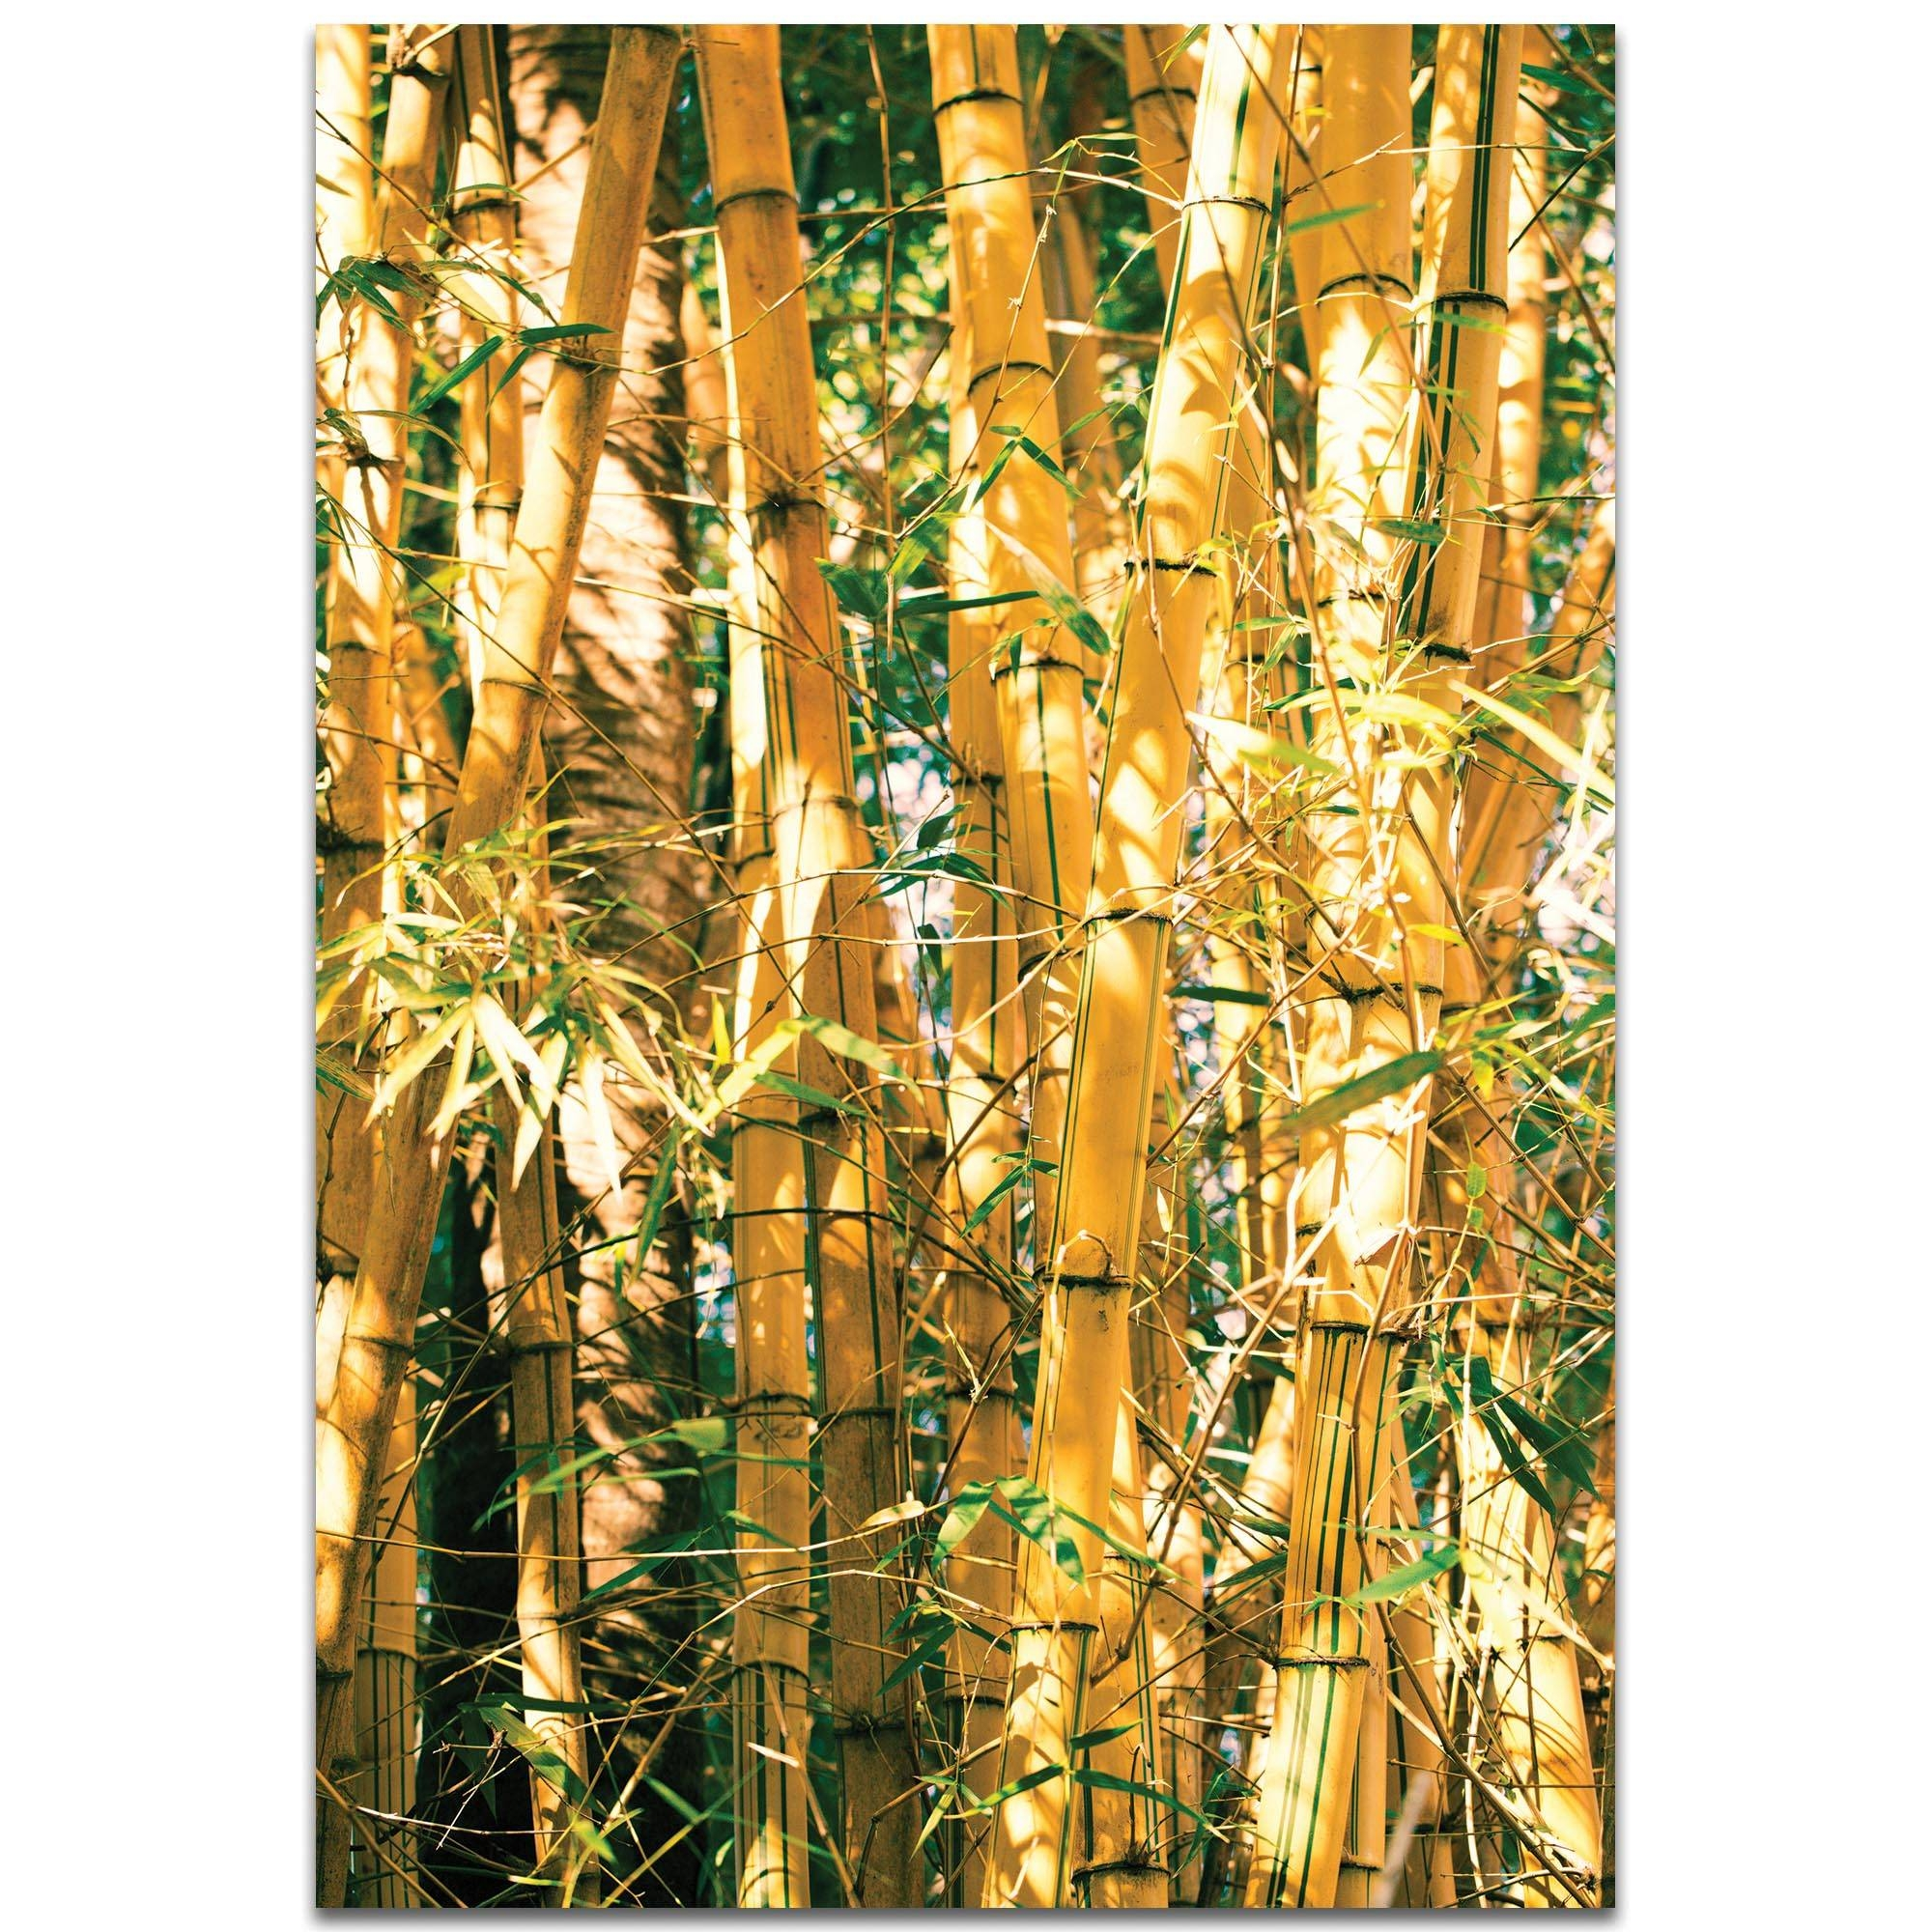 Metal Art Studio – Bamboo Goldmeirav Levy – Nature Photography Intended For Most Recently Released Bamboo Metal Wall Art (View 22 of 25)